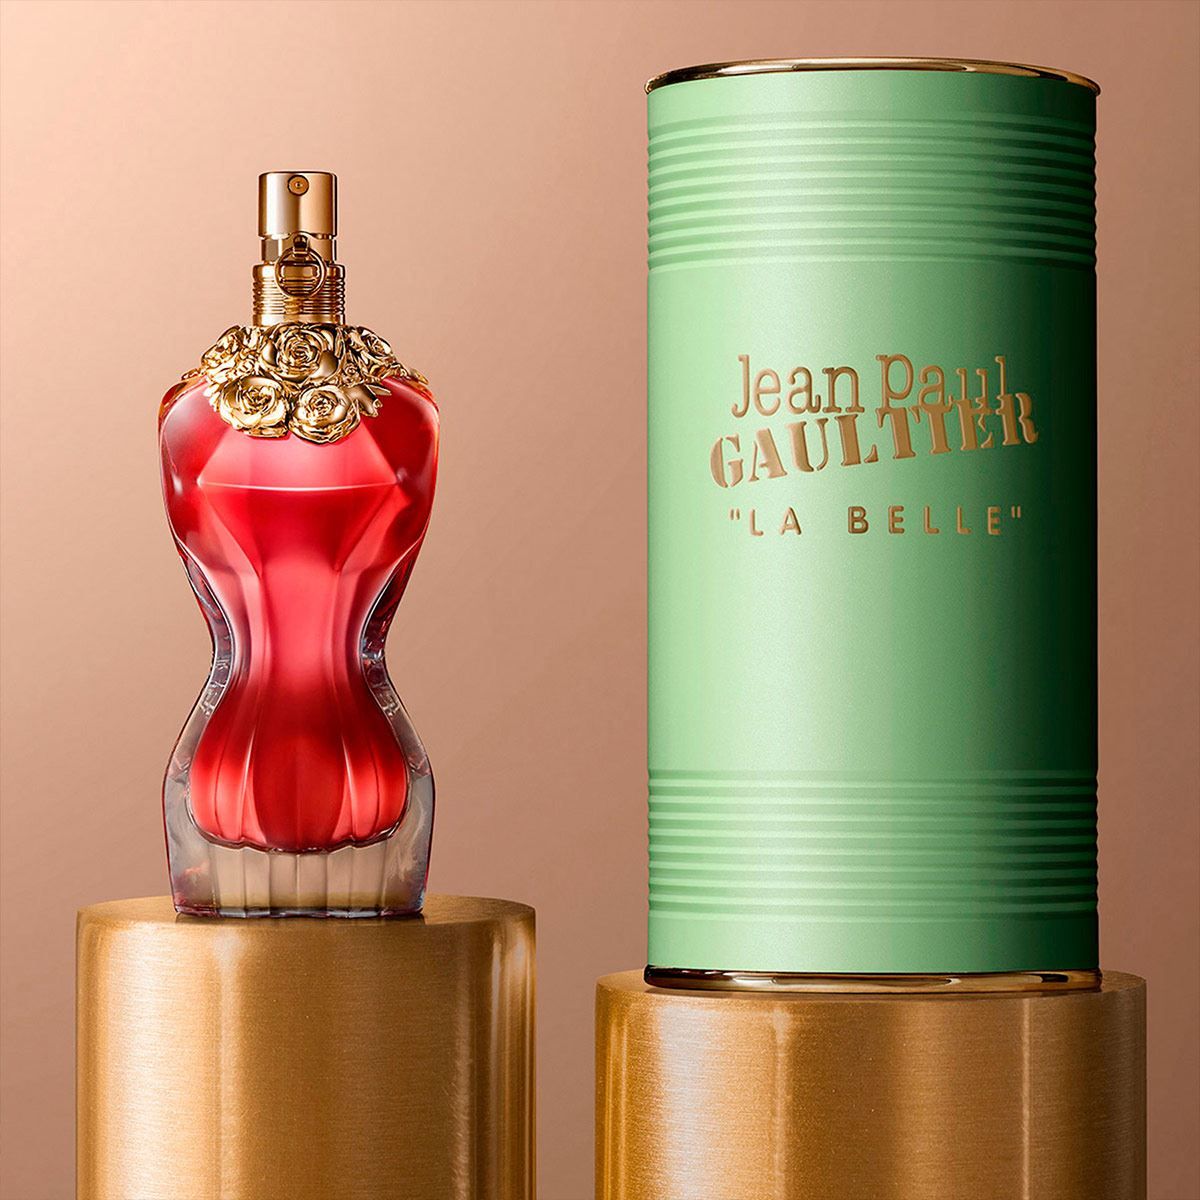 Set para dama, Jean Paul Gaultier, Le Belle, EDP 100ML + Travel spray 10ML